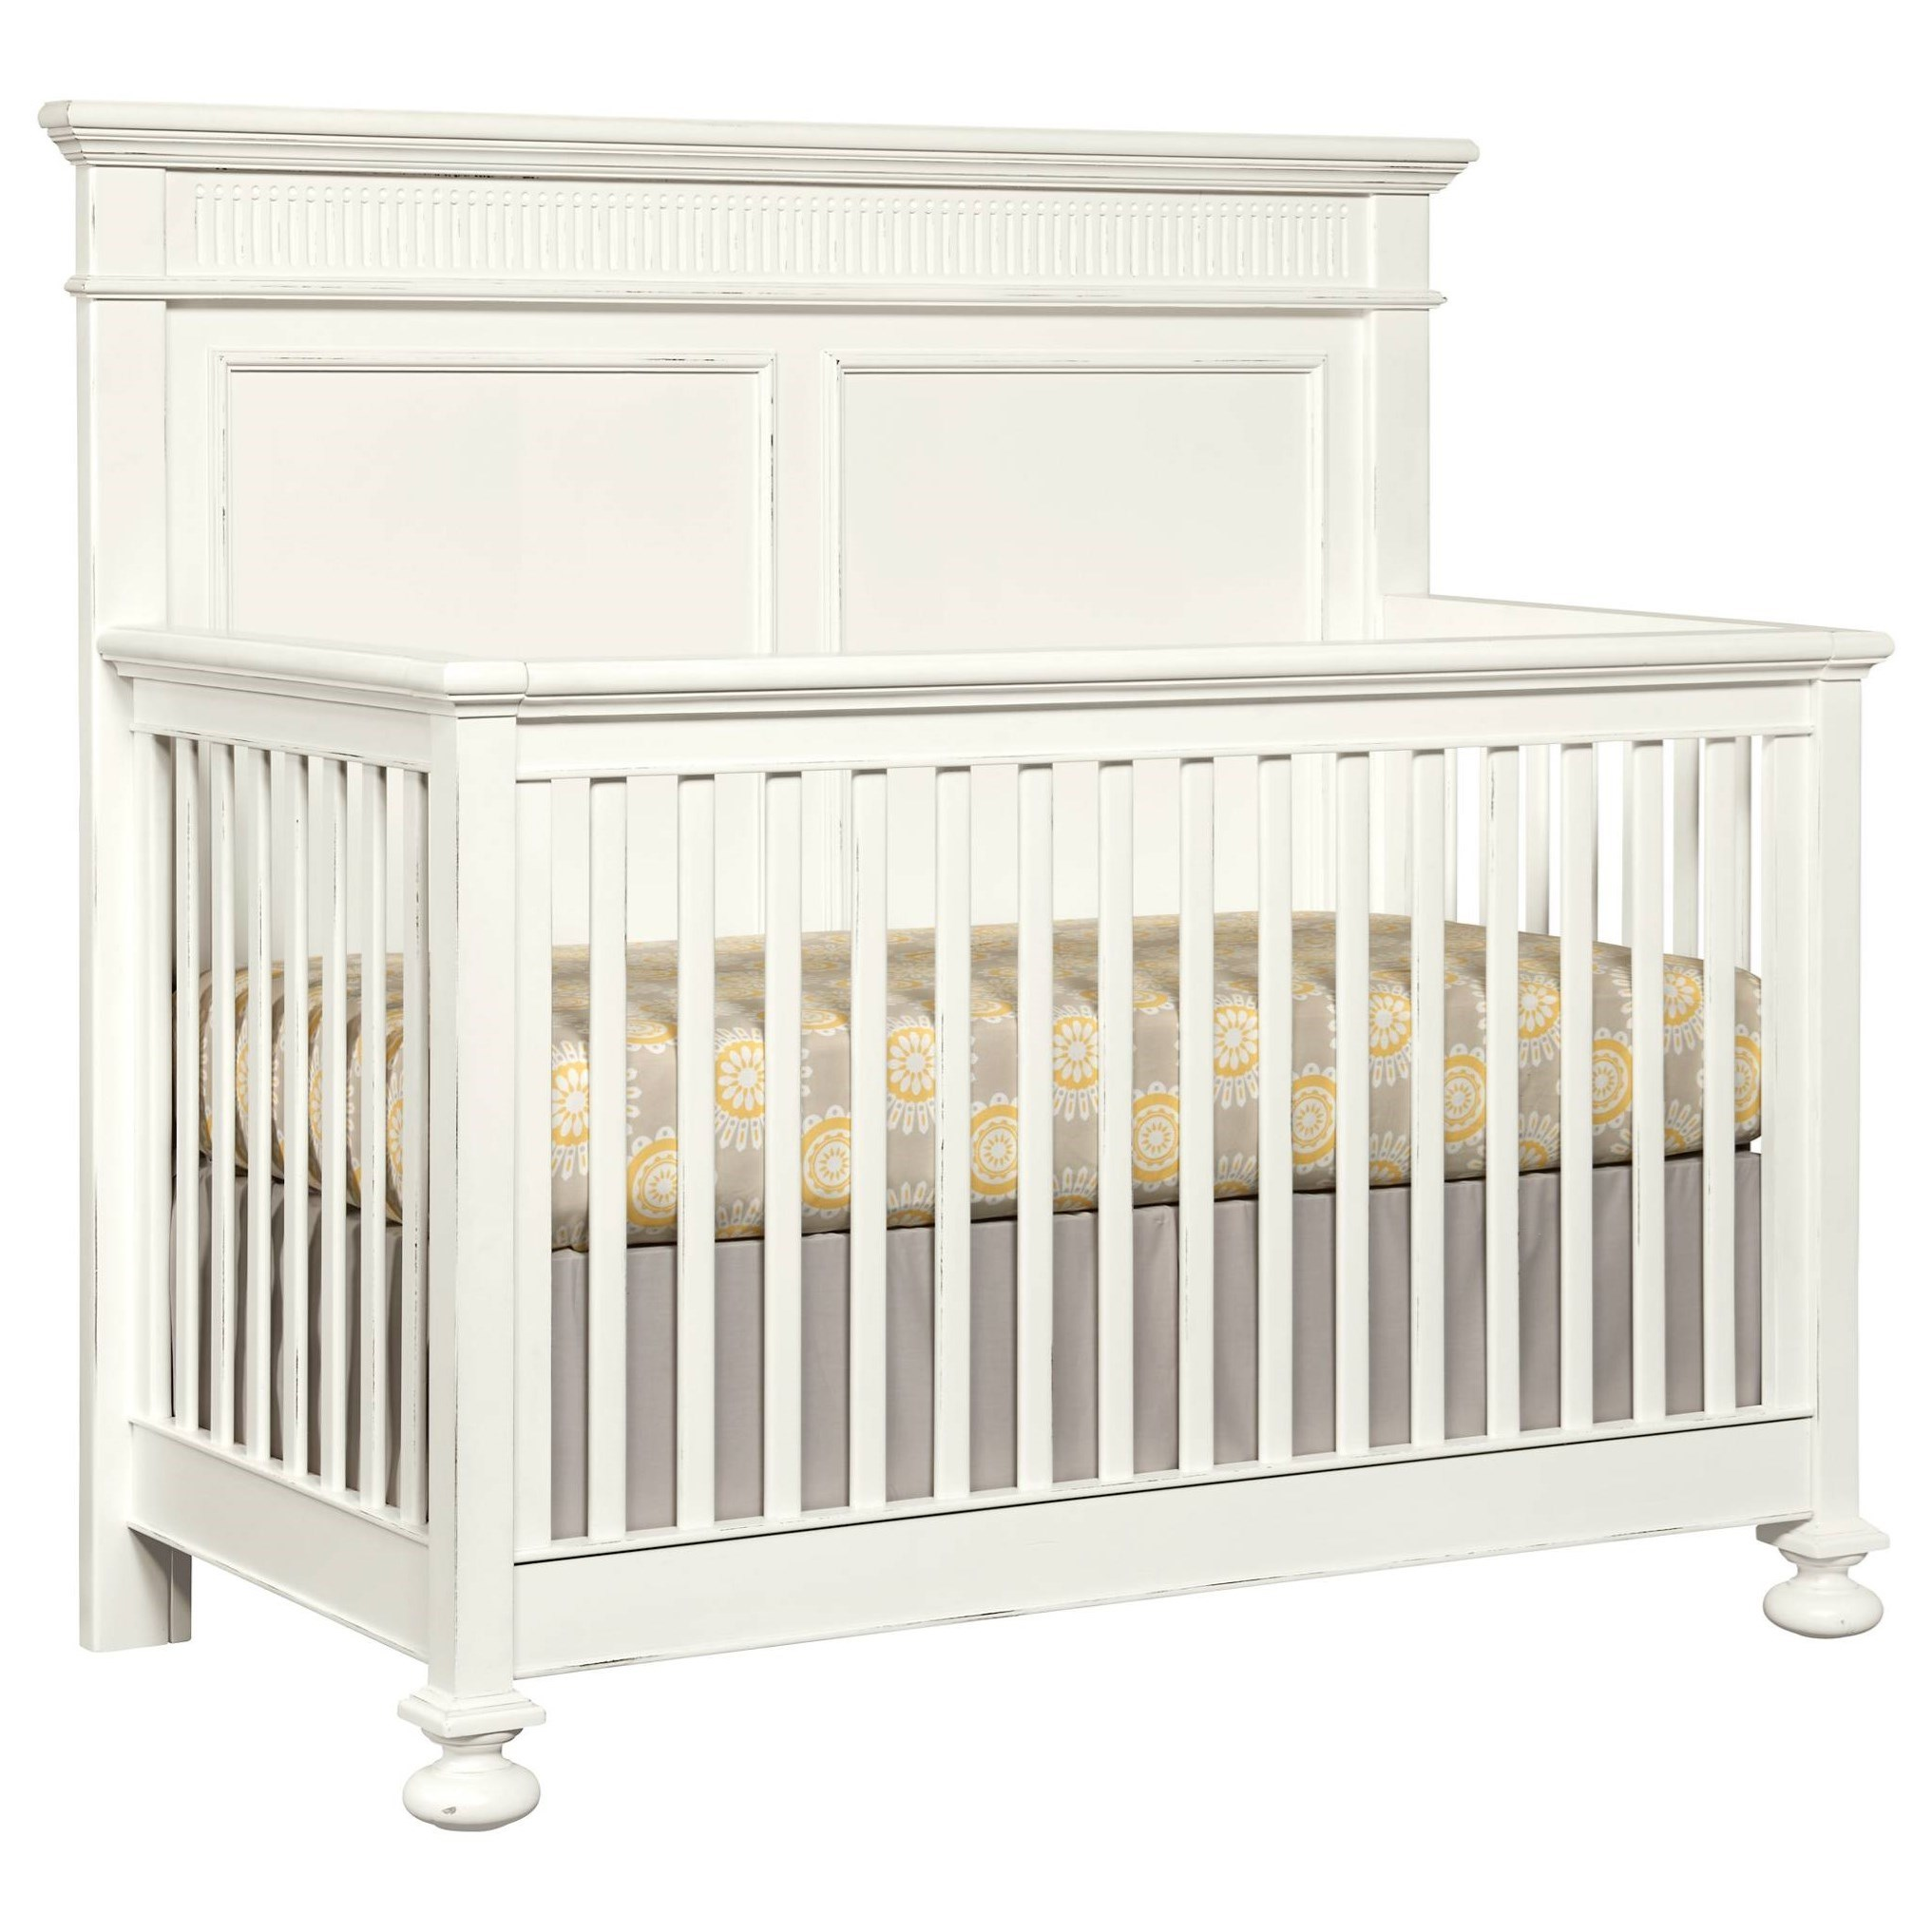 Stone & Leigh Furniture Smiling Hill Built To Grow Crib - Item Number: 560-23-50